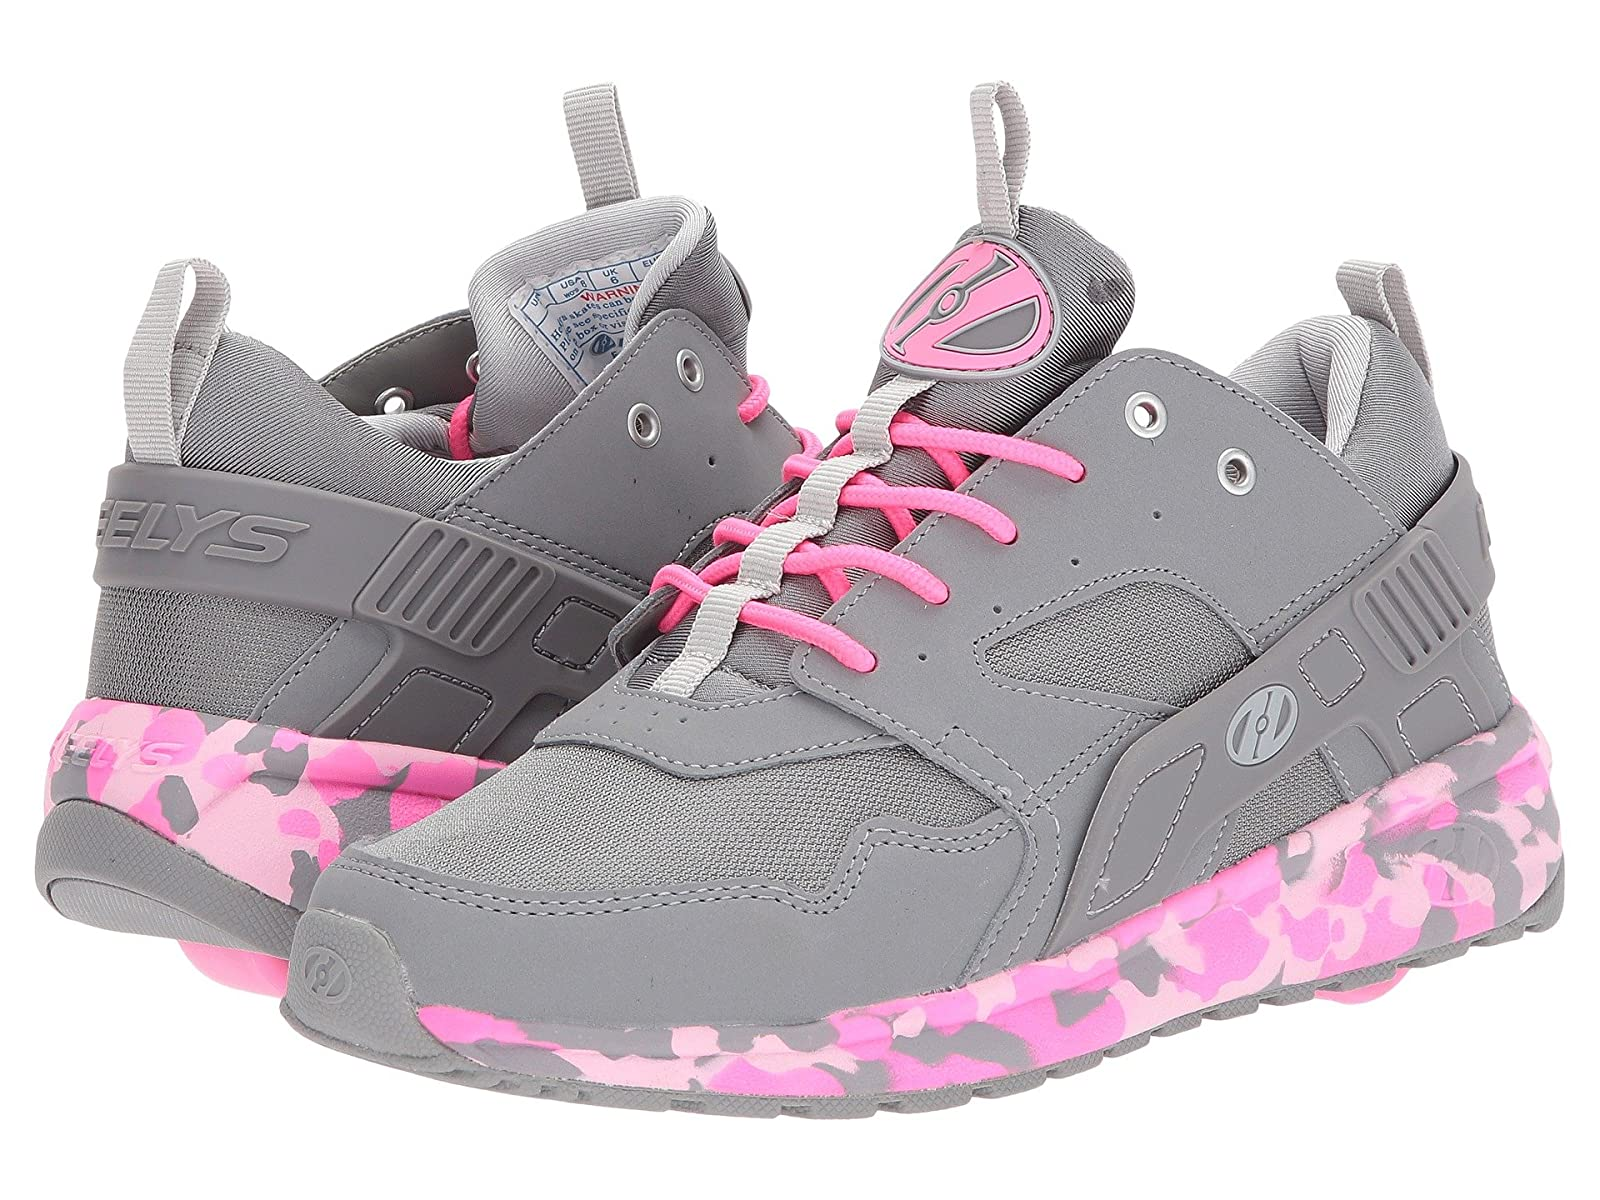 Heelys Force (Little Kid/Big Kid/Adult)Cheap and distinctive eye-catching shoes